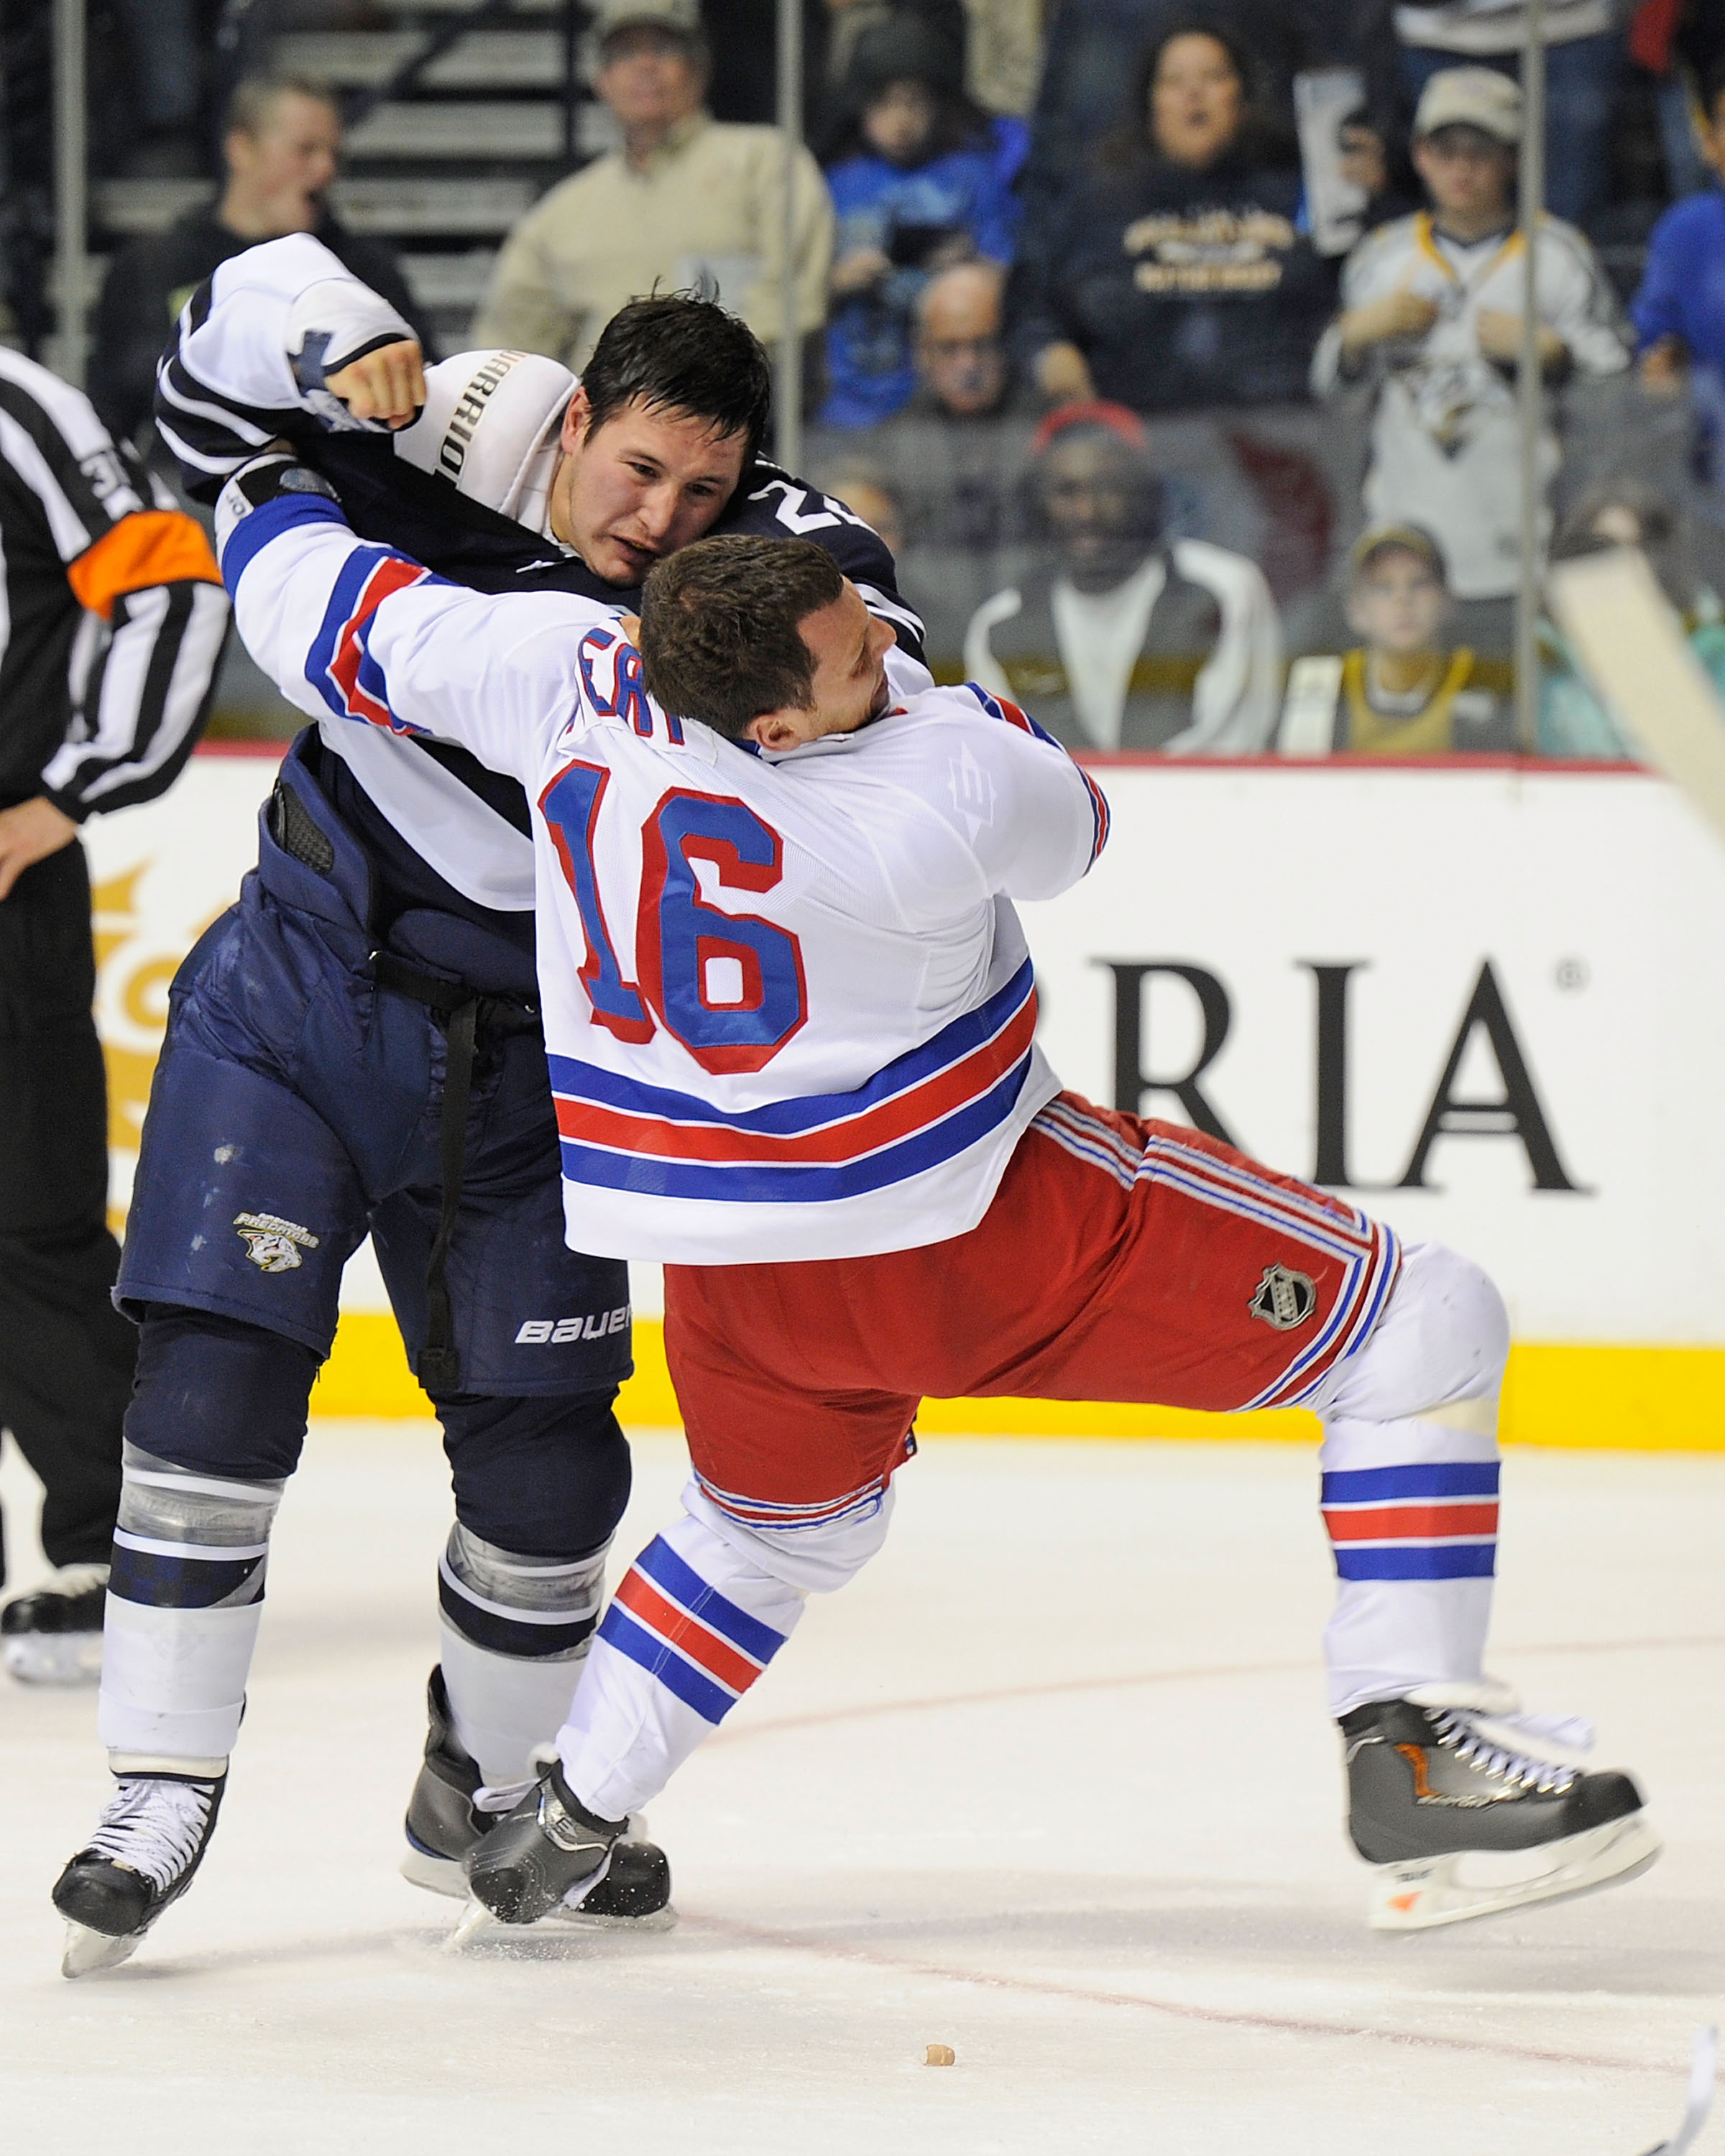 NASHVILLE, TN - NOVEMBER 27:  Jordin Tootoo #22 of the Nashville Predators fights Sean Avery #16 of the New York Rangers on November 27, 2010 at the Bridgestone Arena in Nashville, Tennessee.  (Photo by Frederick Breedon/Getty Images)